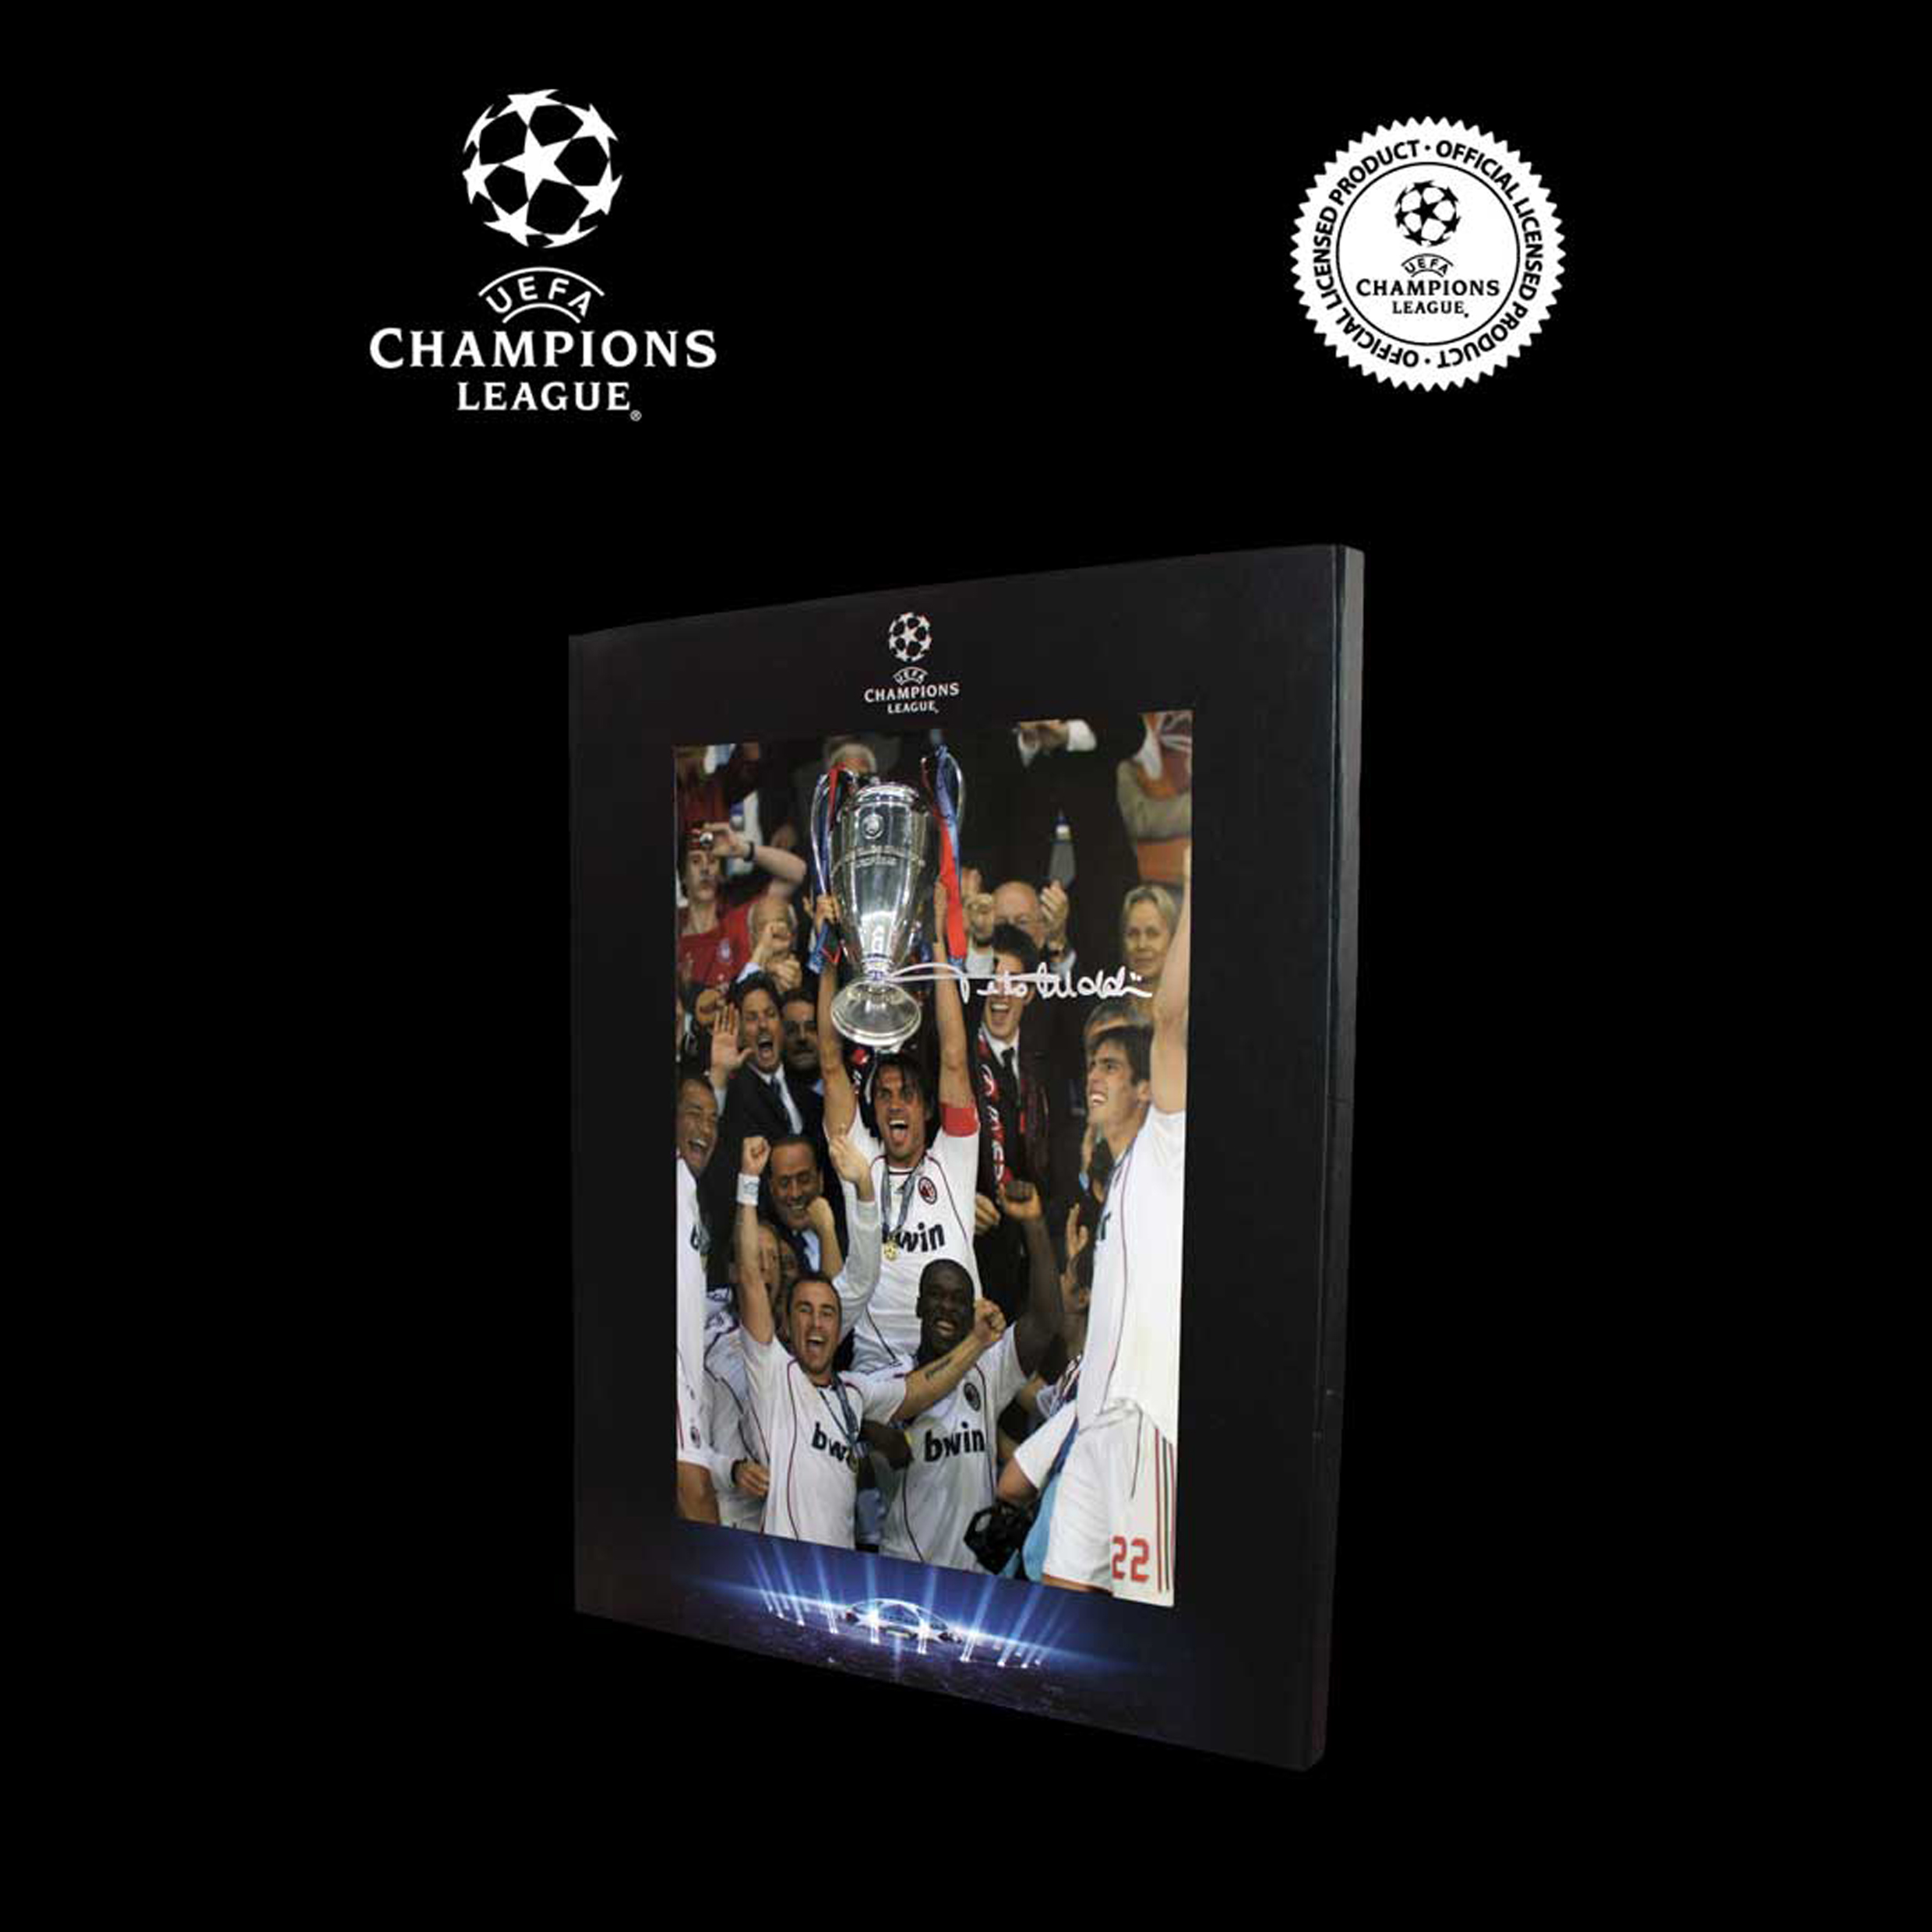 UEFA Champions League Paolo Maldini Signed AC Milan Photo In Deluxe Packaging: 2007 Final